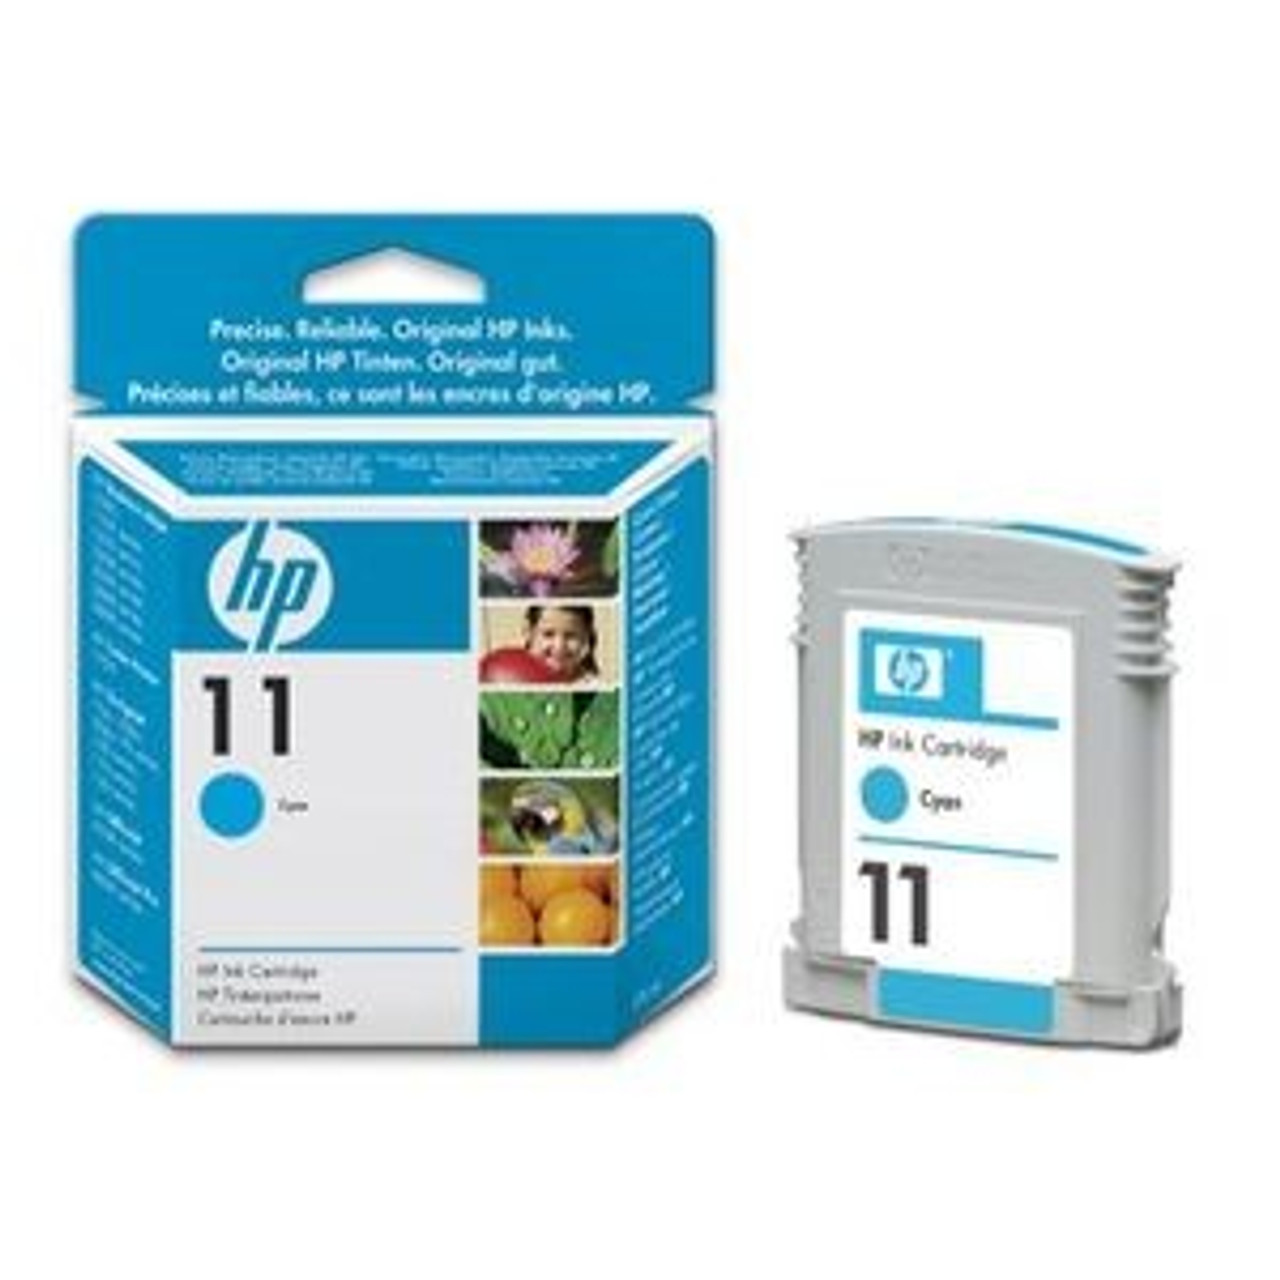 Hp 11 Original Cyan Ink Cartridge (C4836ae)